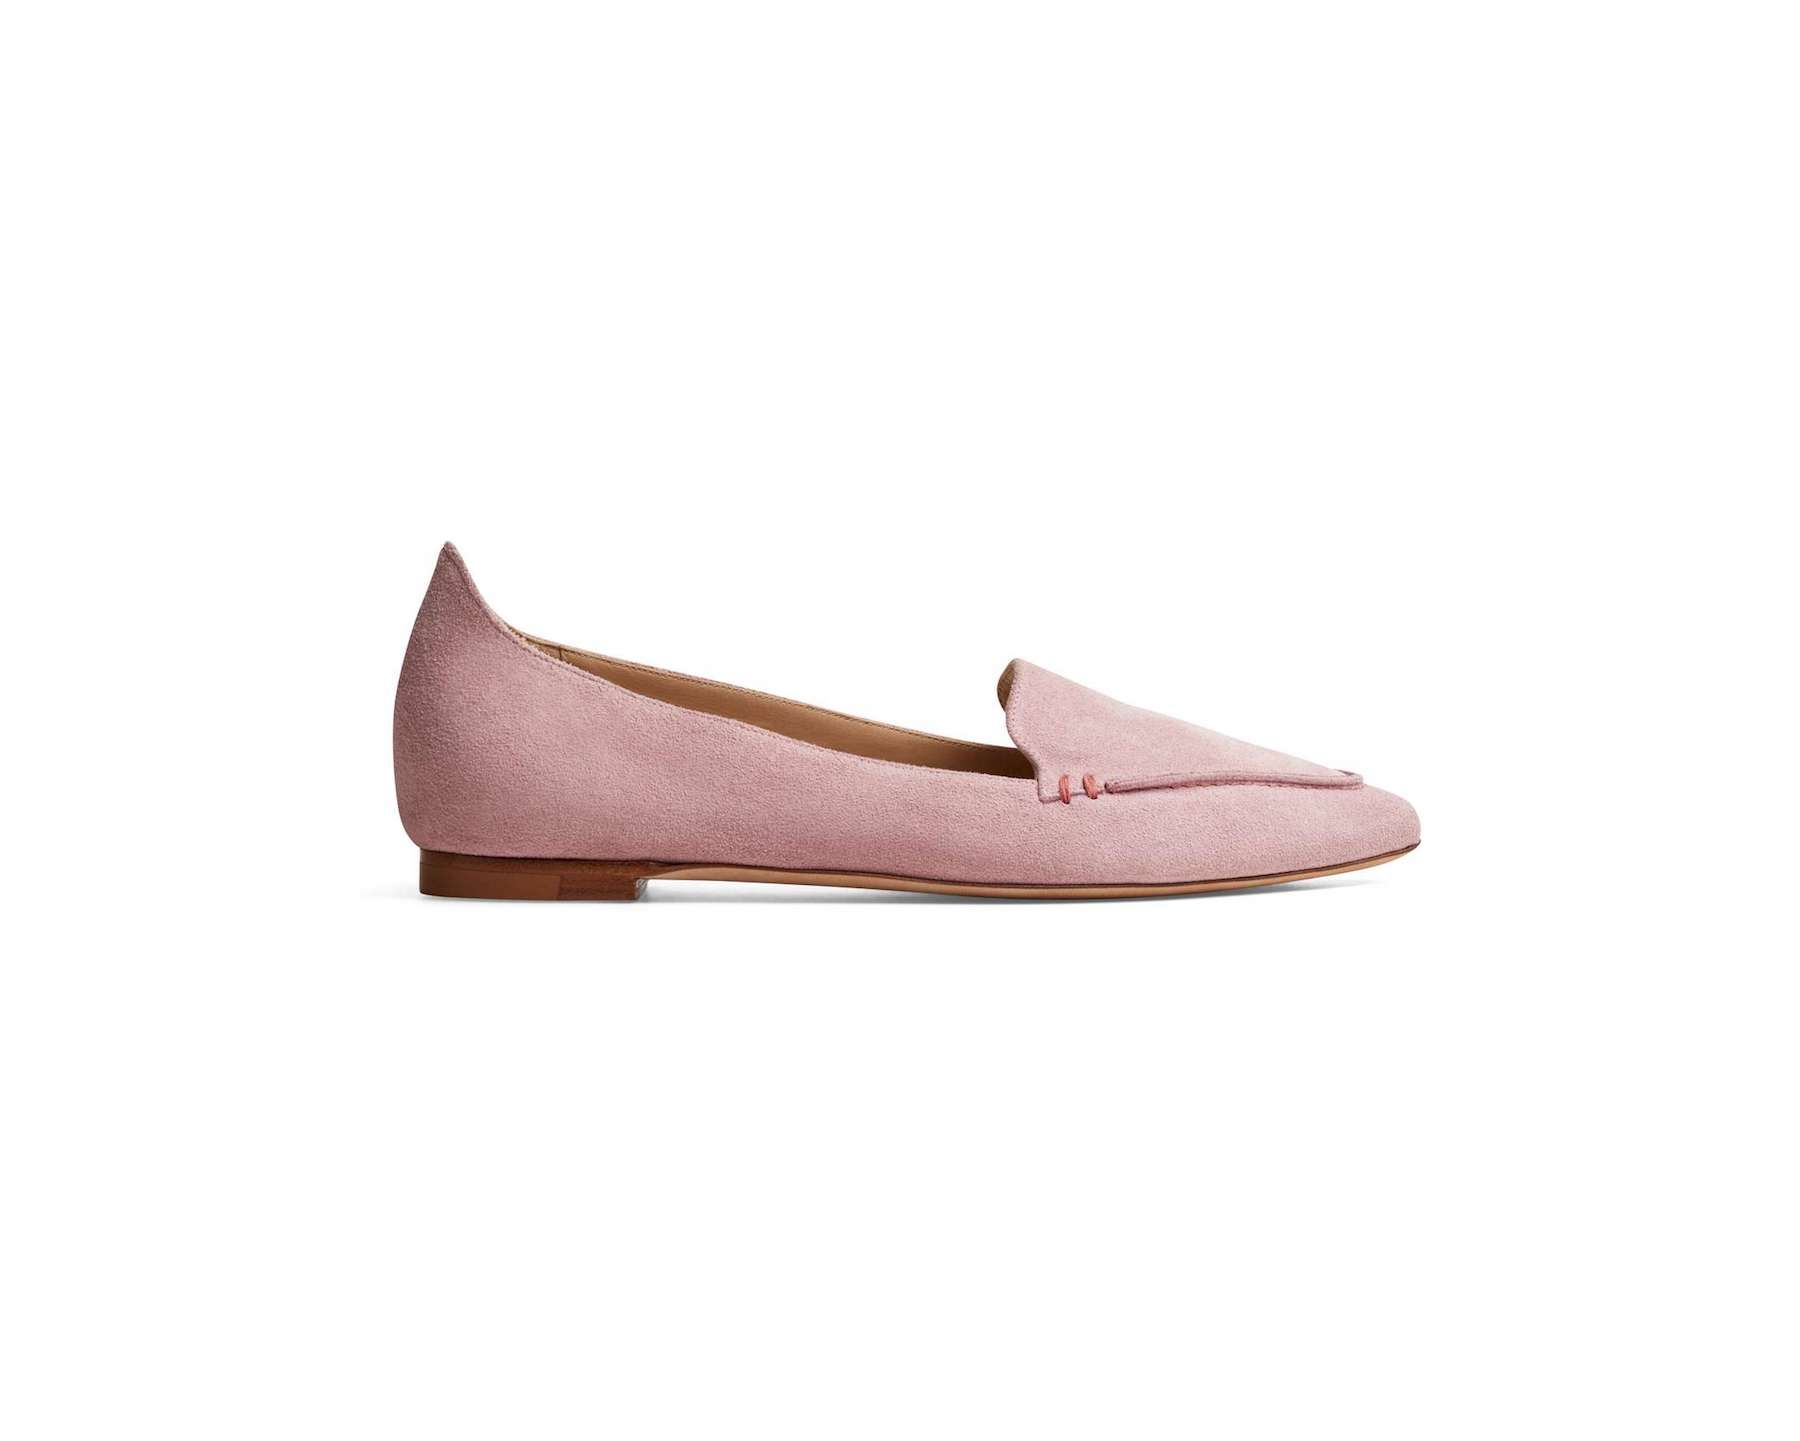 Pink suede flats from M.Gemi